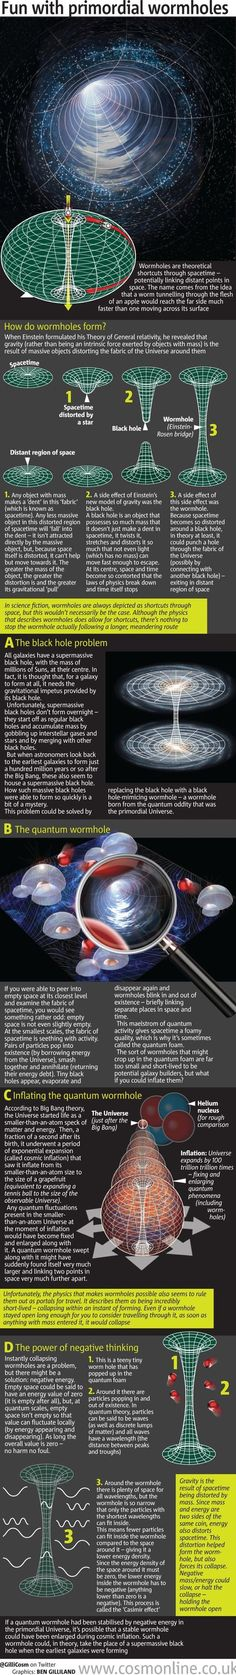 Black hole? Or wormhole in disguise? | CosmOnline::